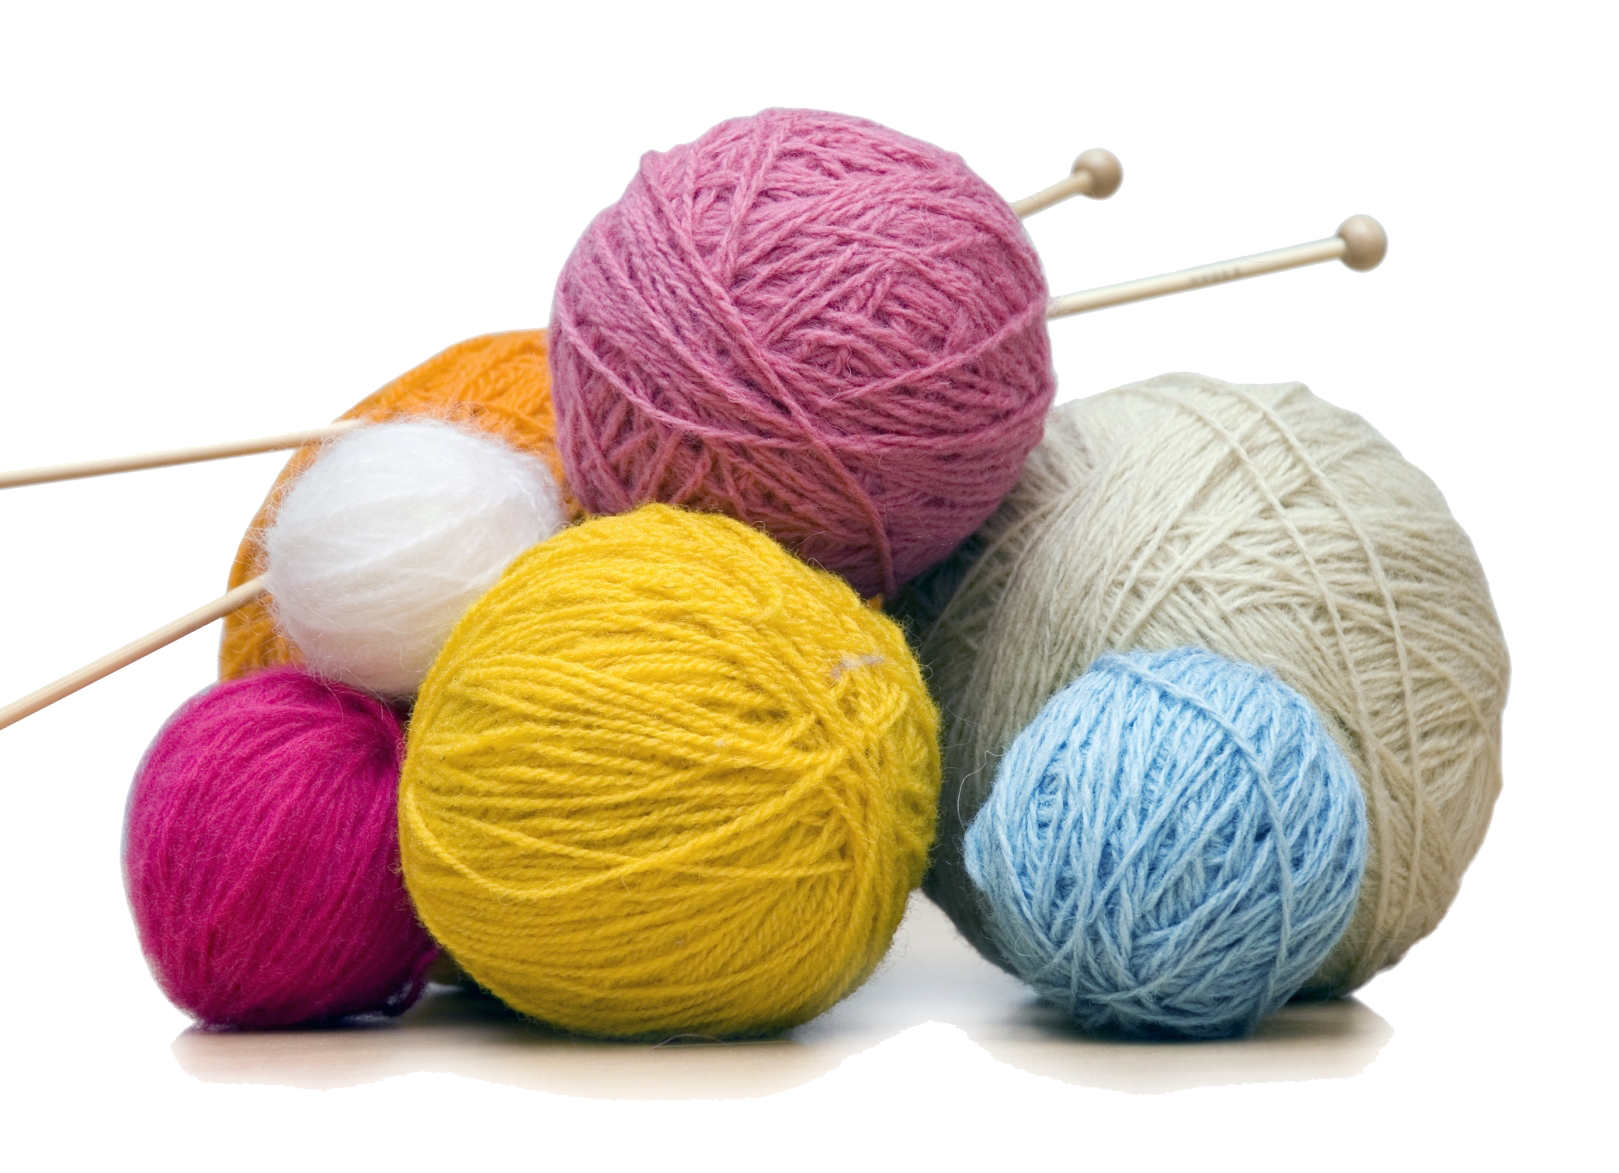 Transparent yarn background. Png images pictures photos